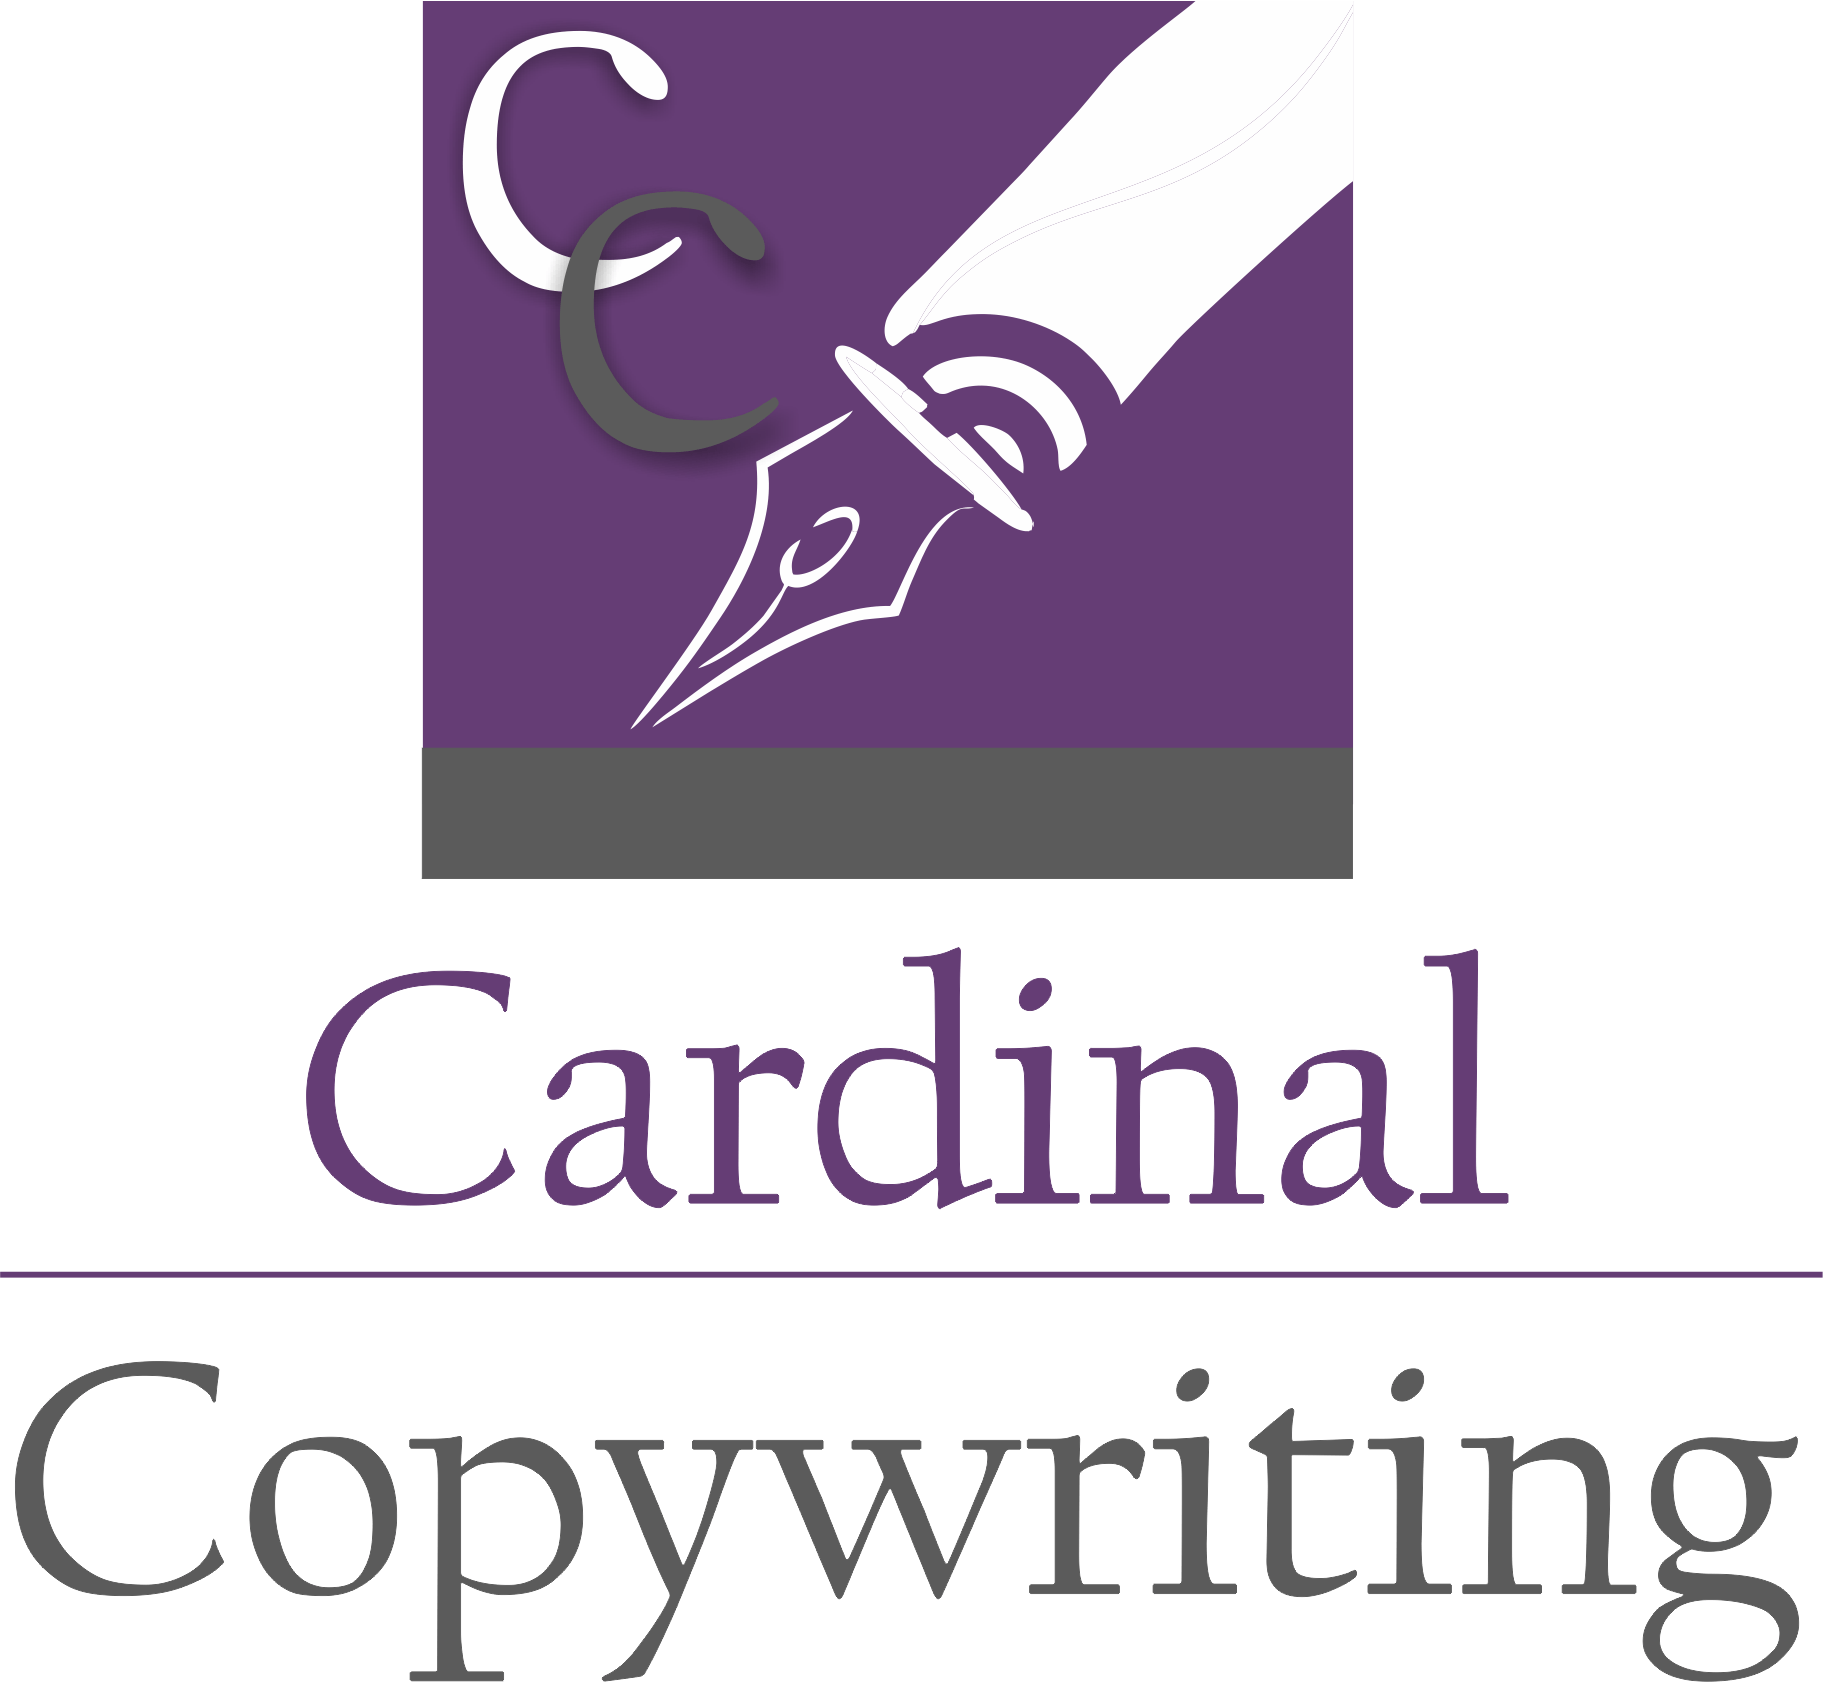 Cardinal Copywriting